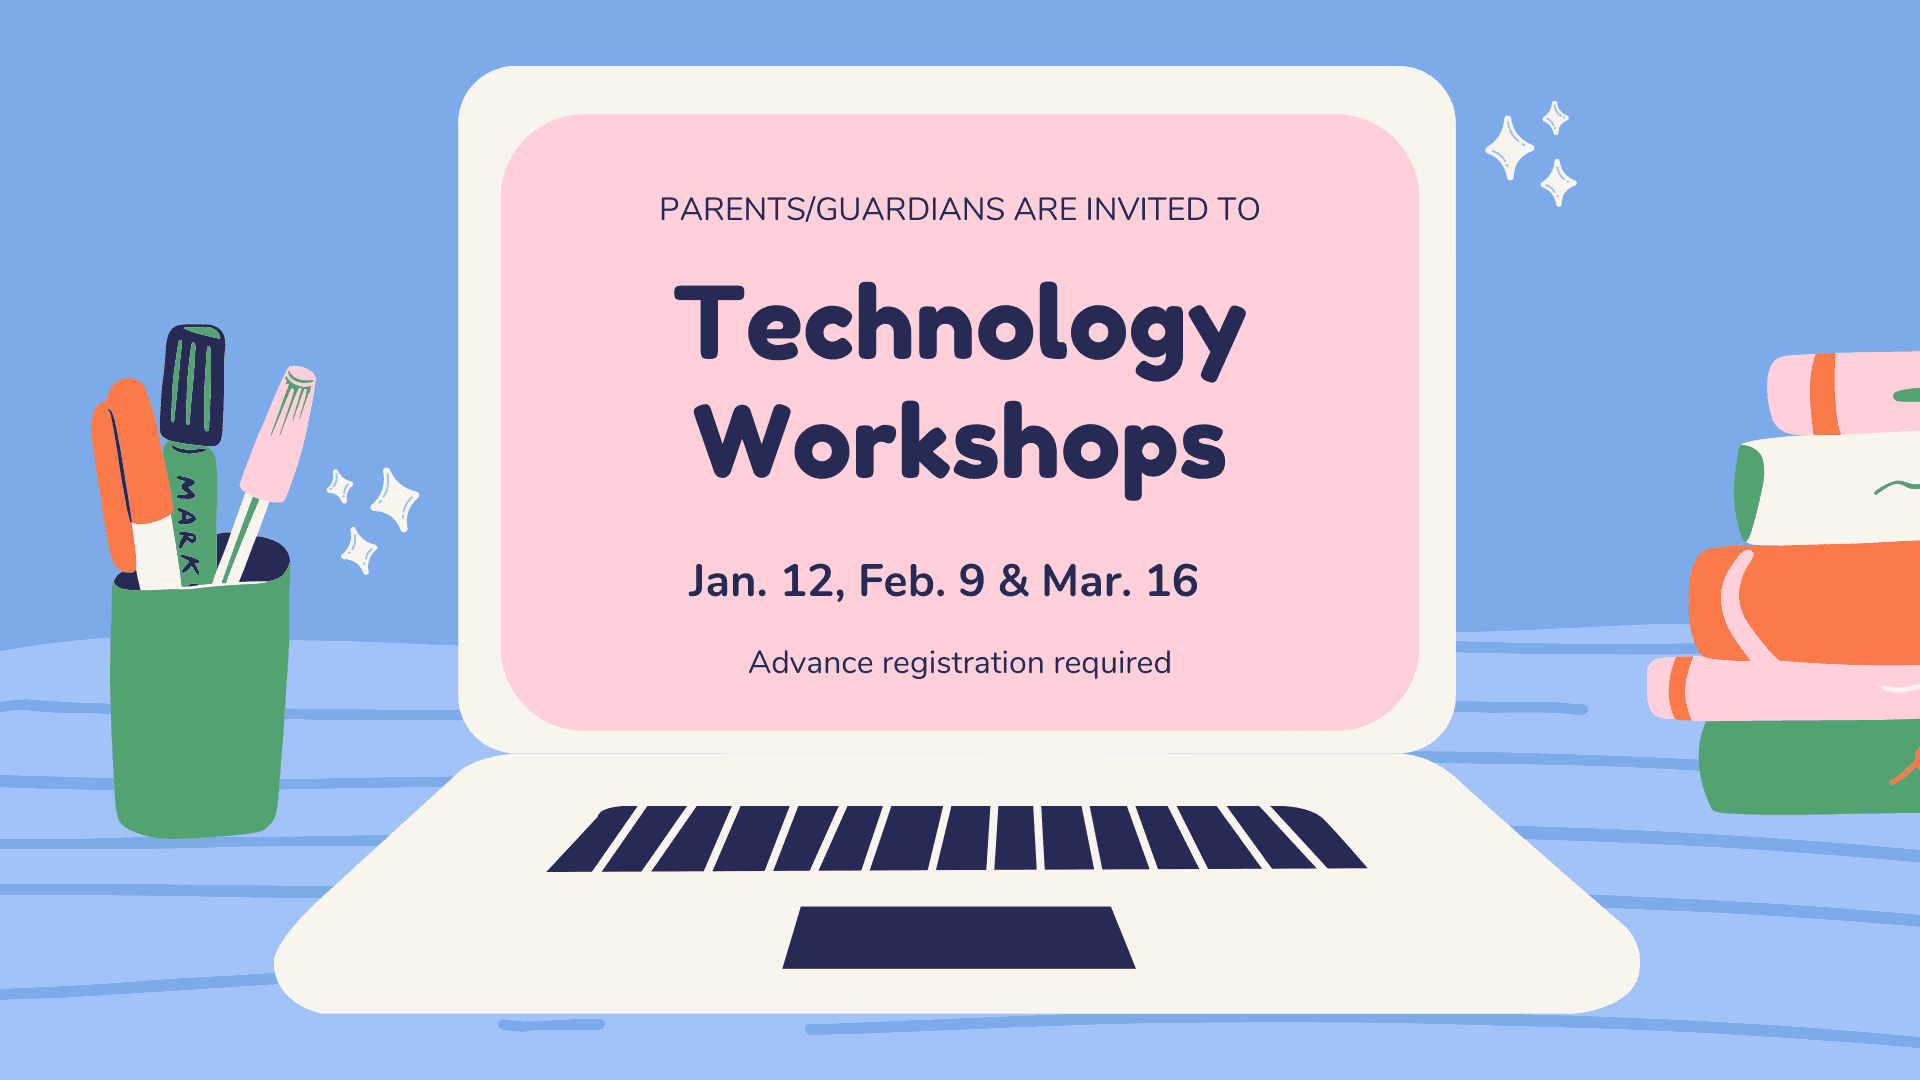 technology workshops on January 12, February 9 and March 16 click here for registration info